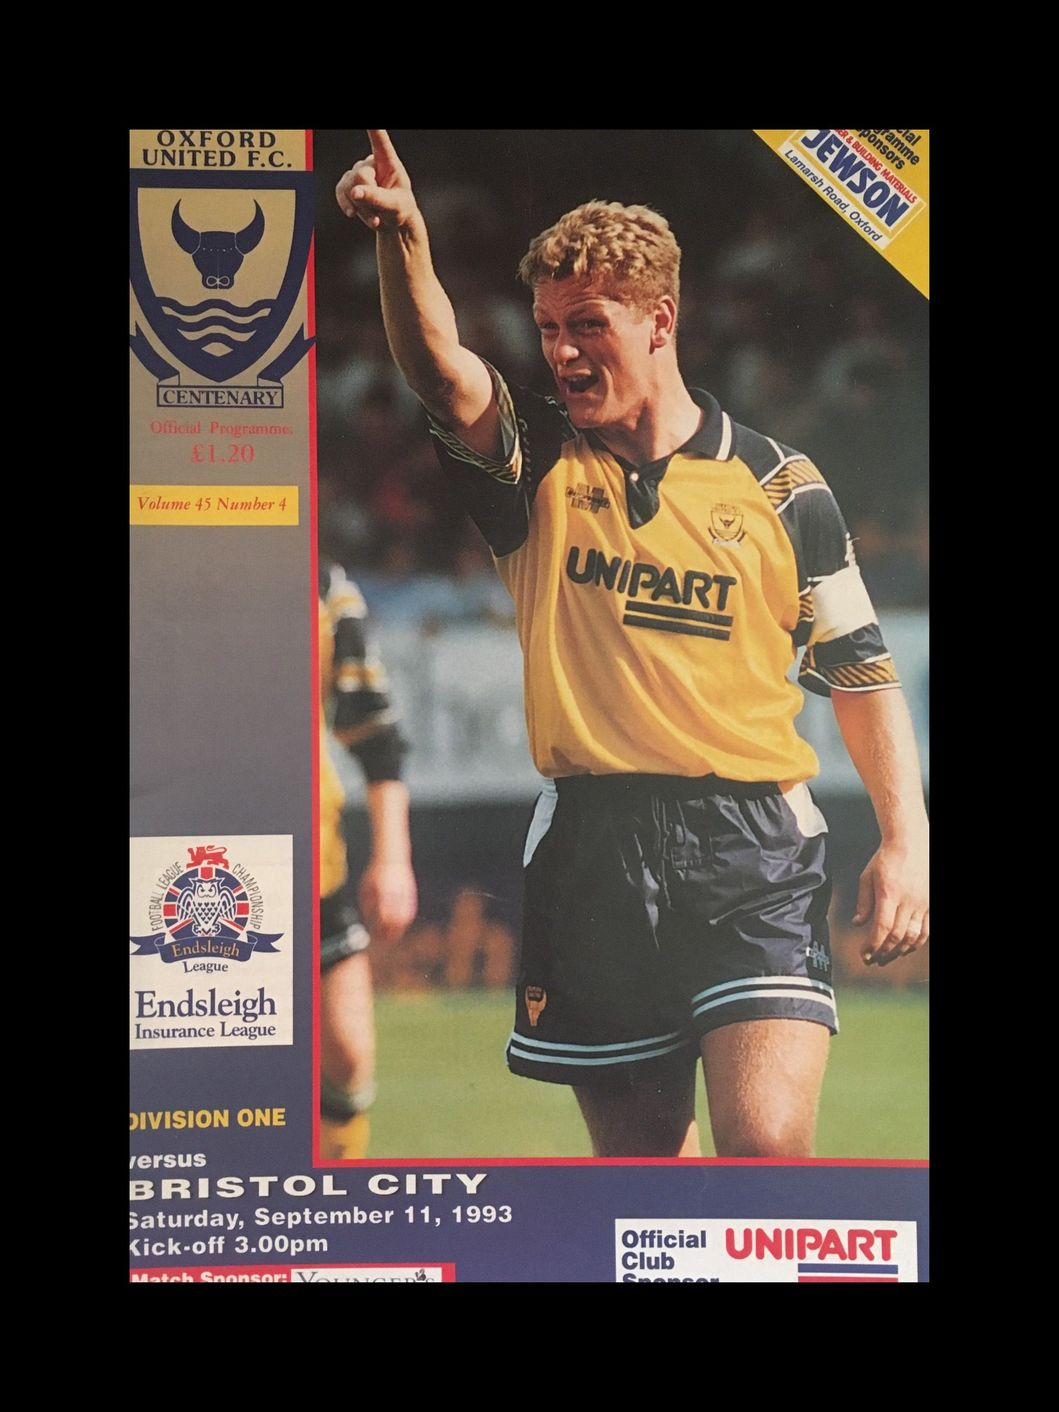 Oxford United v Bristol City 11-09-1993 Programme